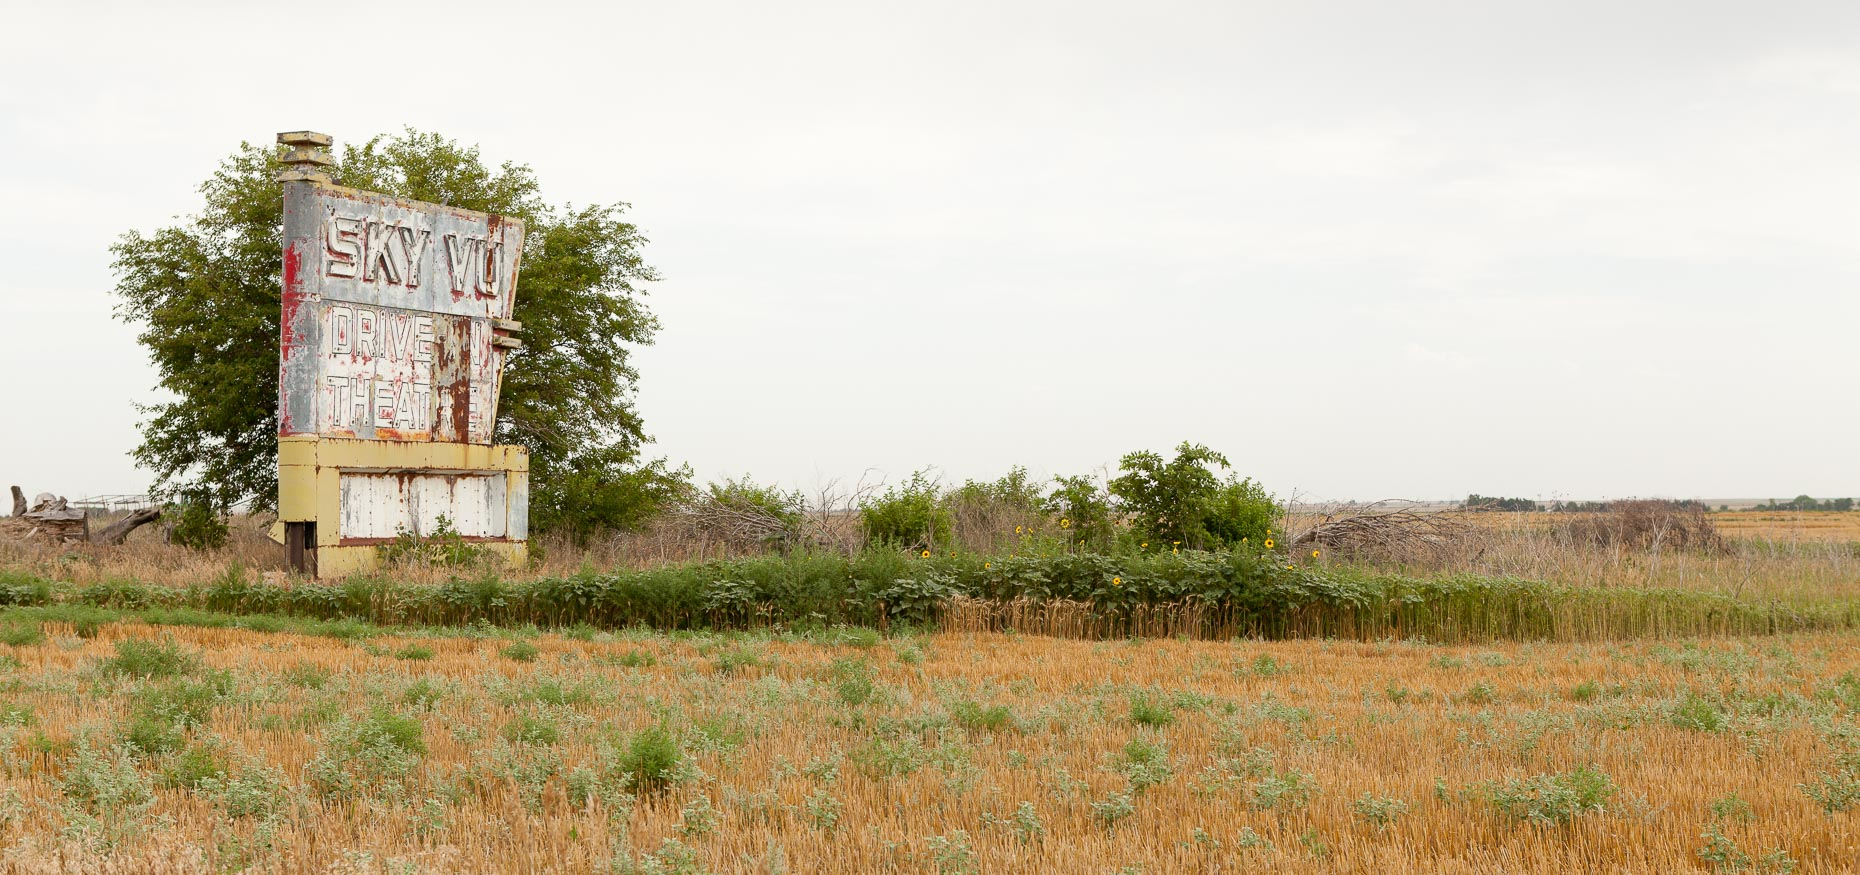 Sign for SKY VUE drive in theater closed, abandoned in Russell, Kansas by David Zaitz